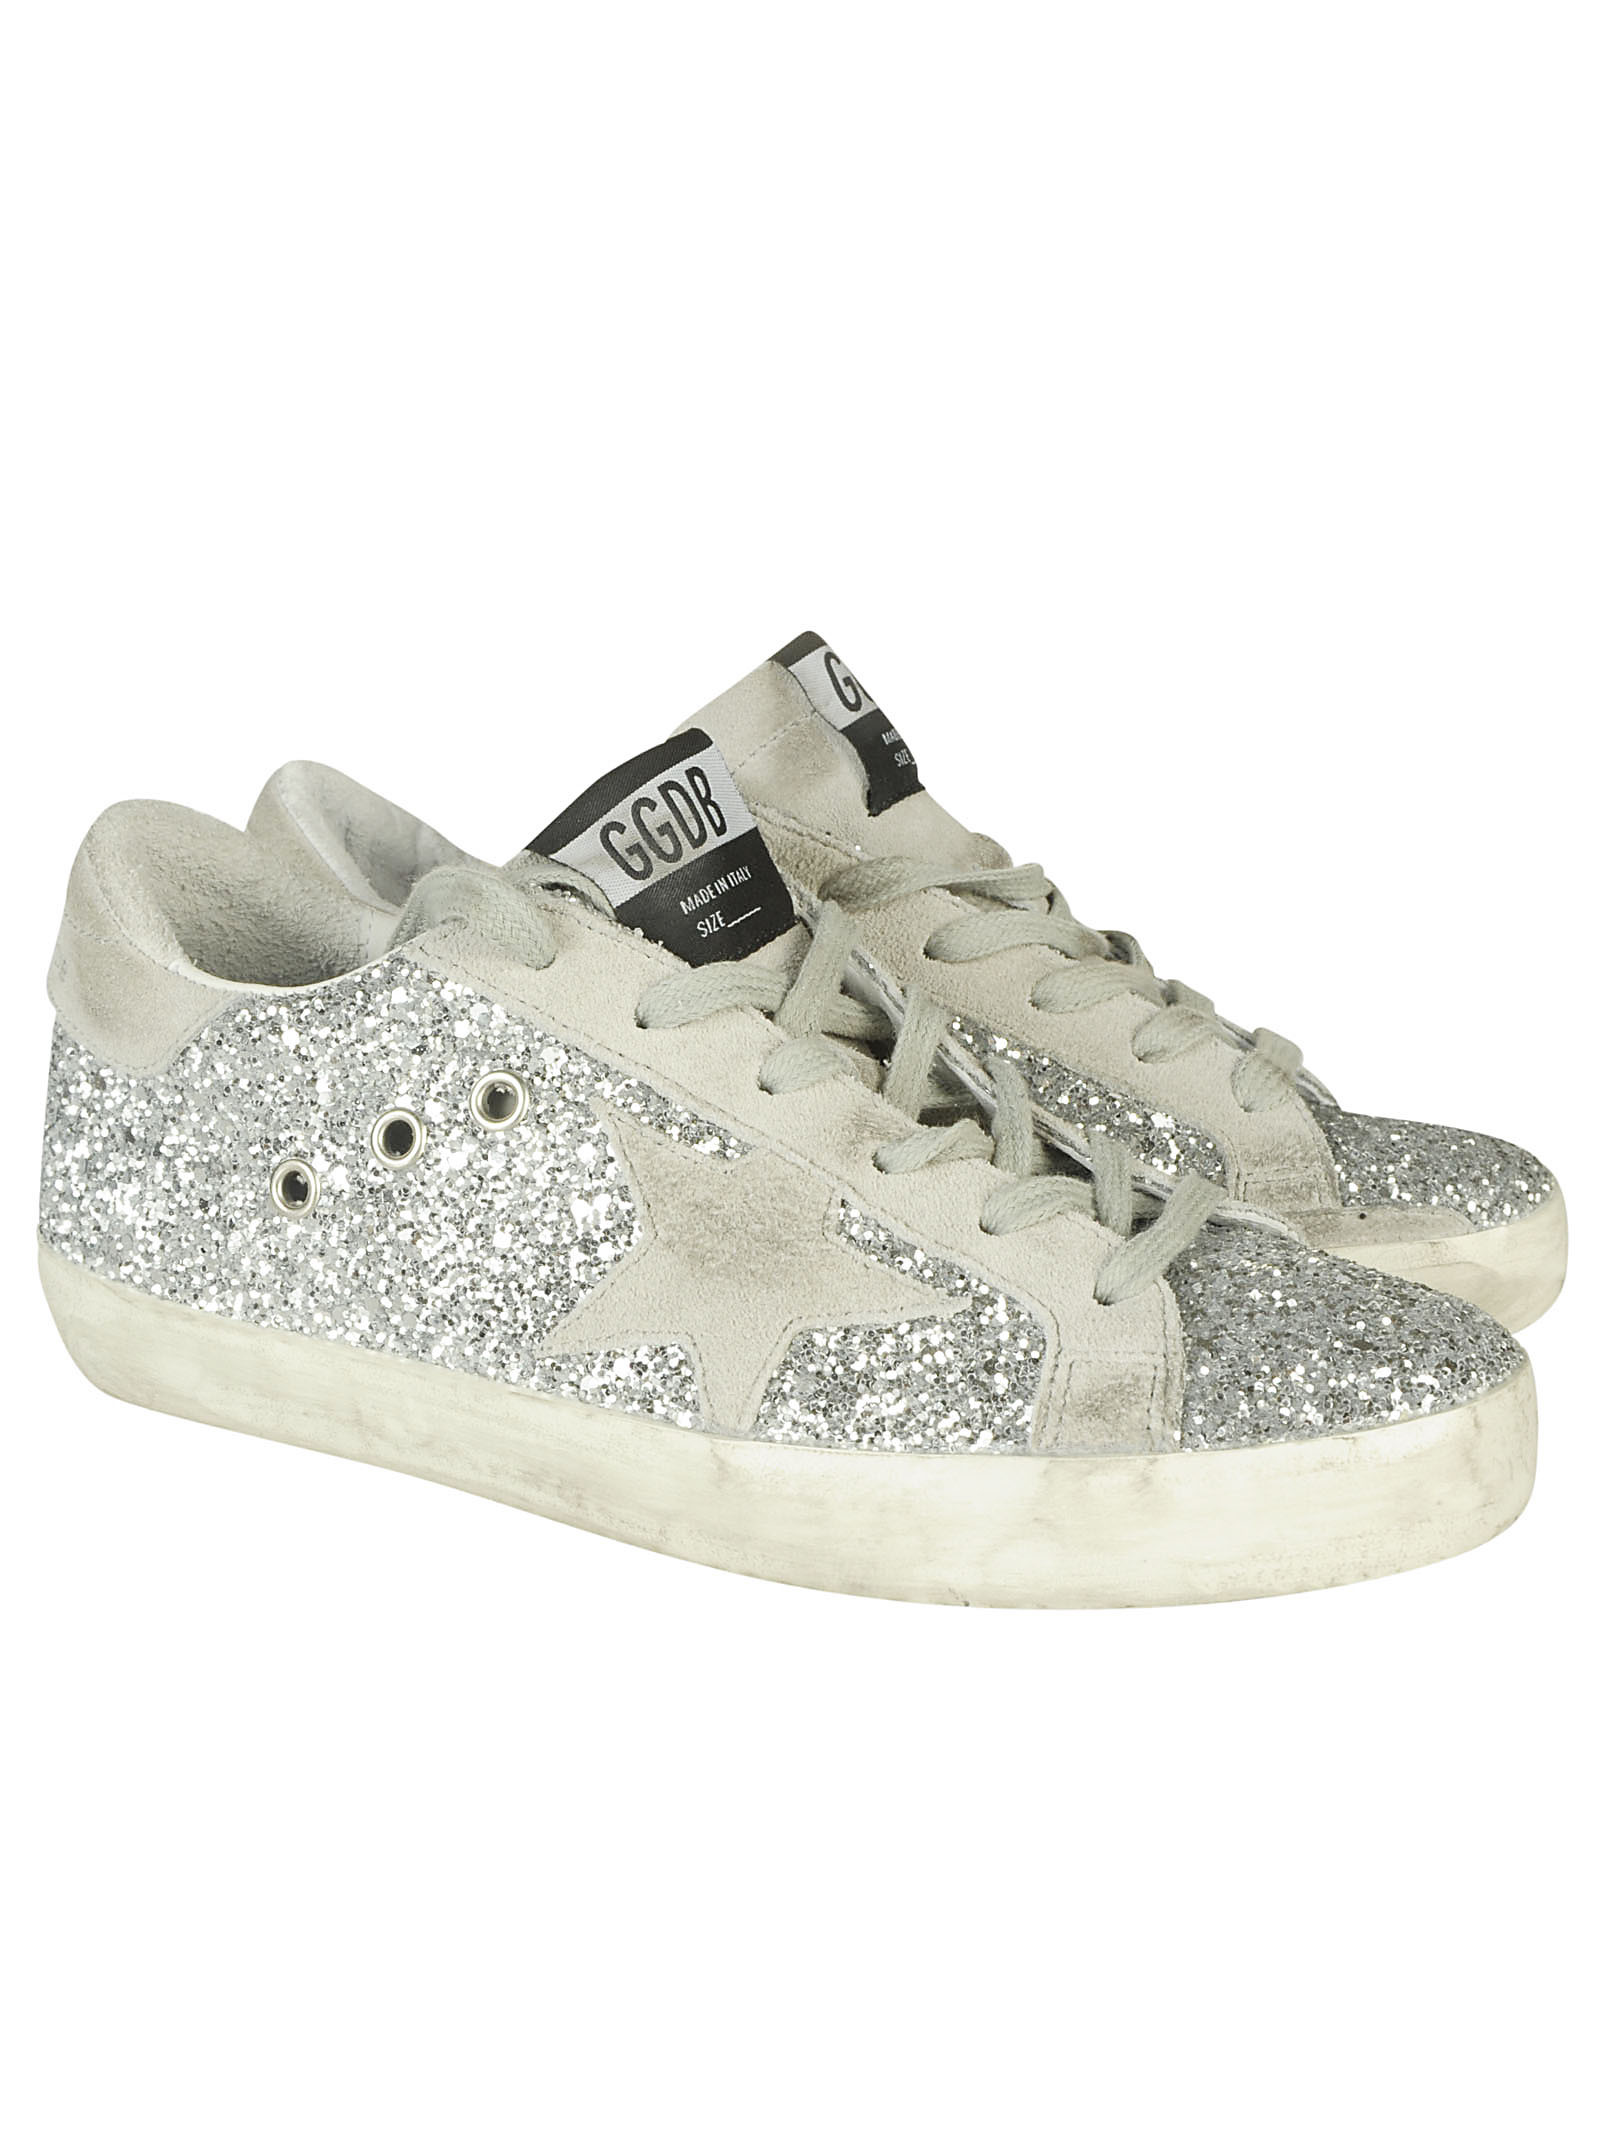 Golden Goose - Golden Goose Superstar Sneakers, Women's Sneakers | Italist